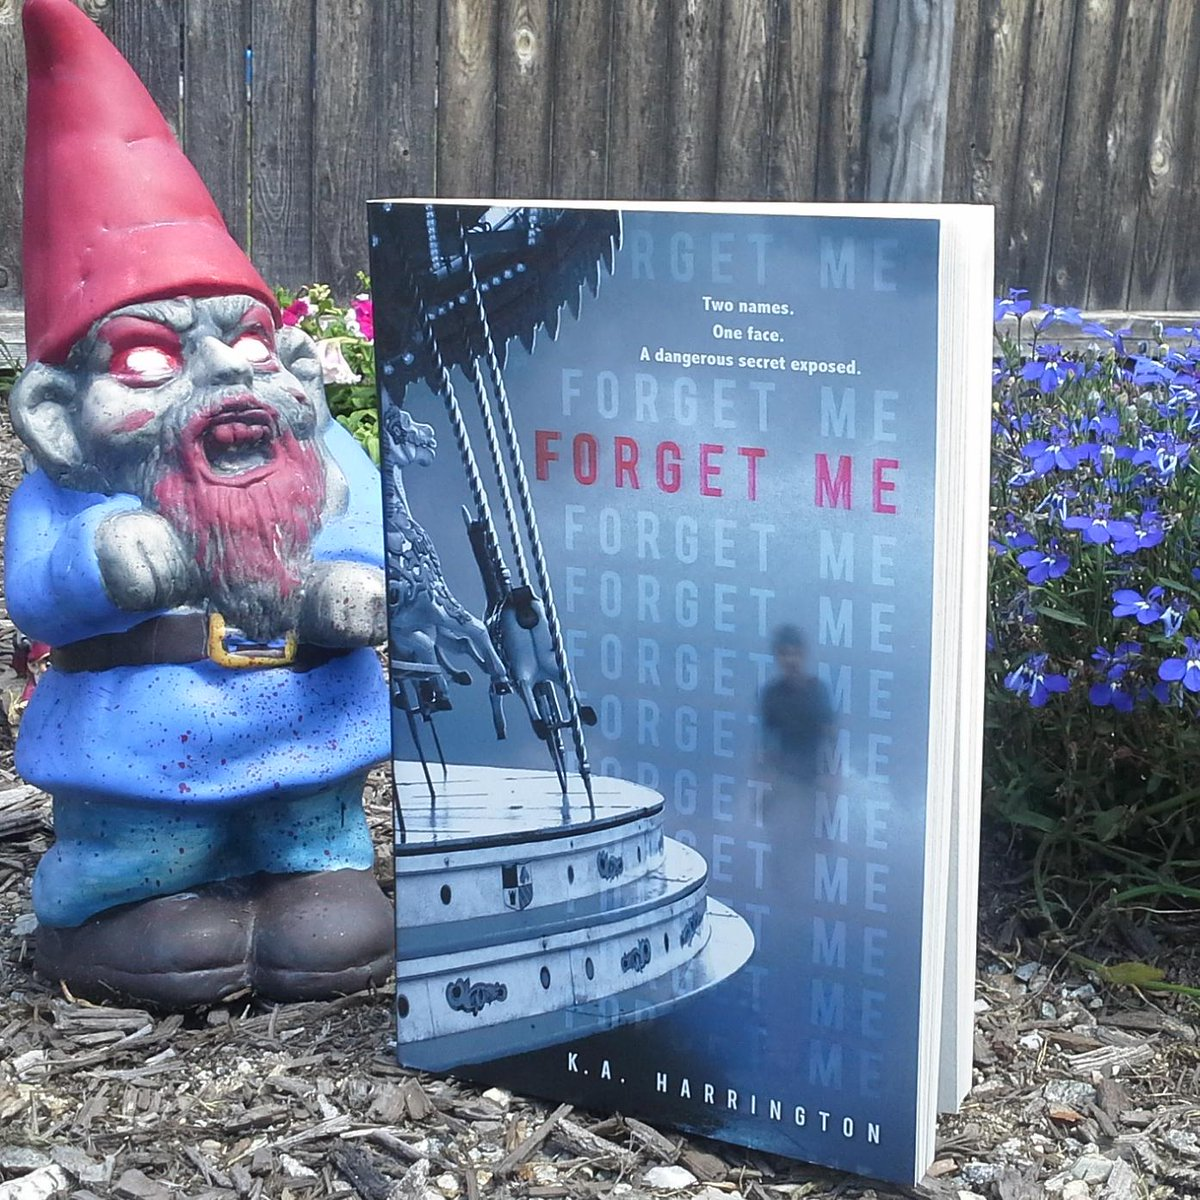 Paperback release day! RT this by 8/9 for a chance to win a signed FORGET ME. (Zombie gnome not incl.) @PenguinTeen http://t.co/rK8Coz4QGo